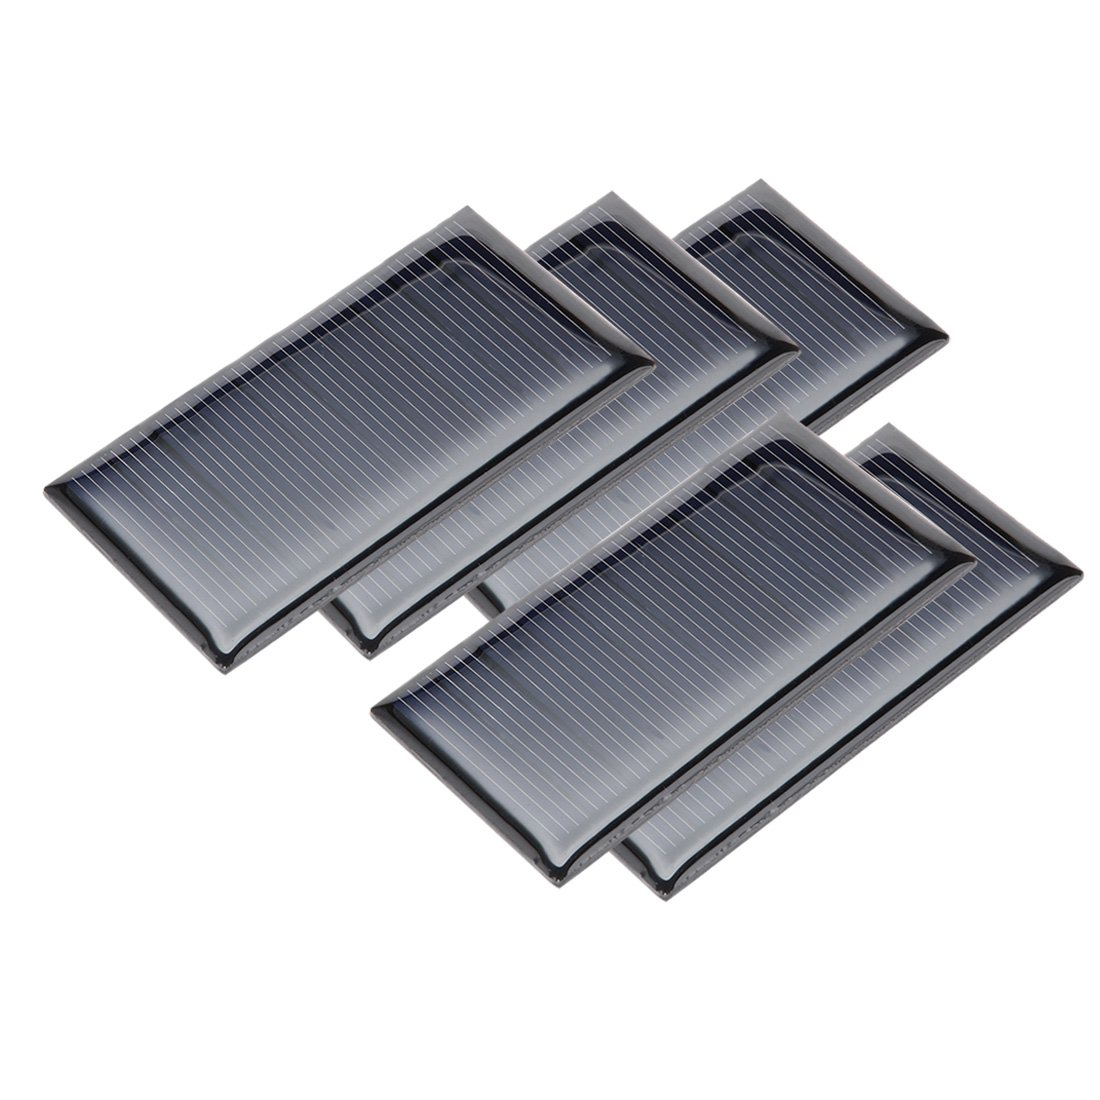 uxcell 5Pcs 5V 60mA Poly Mini Solar Cell Panel Module DIY for Light Toys Charger 68mm x 37mm